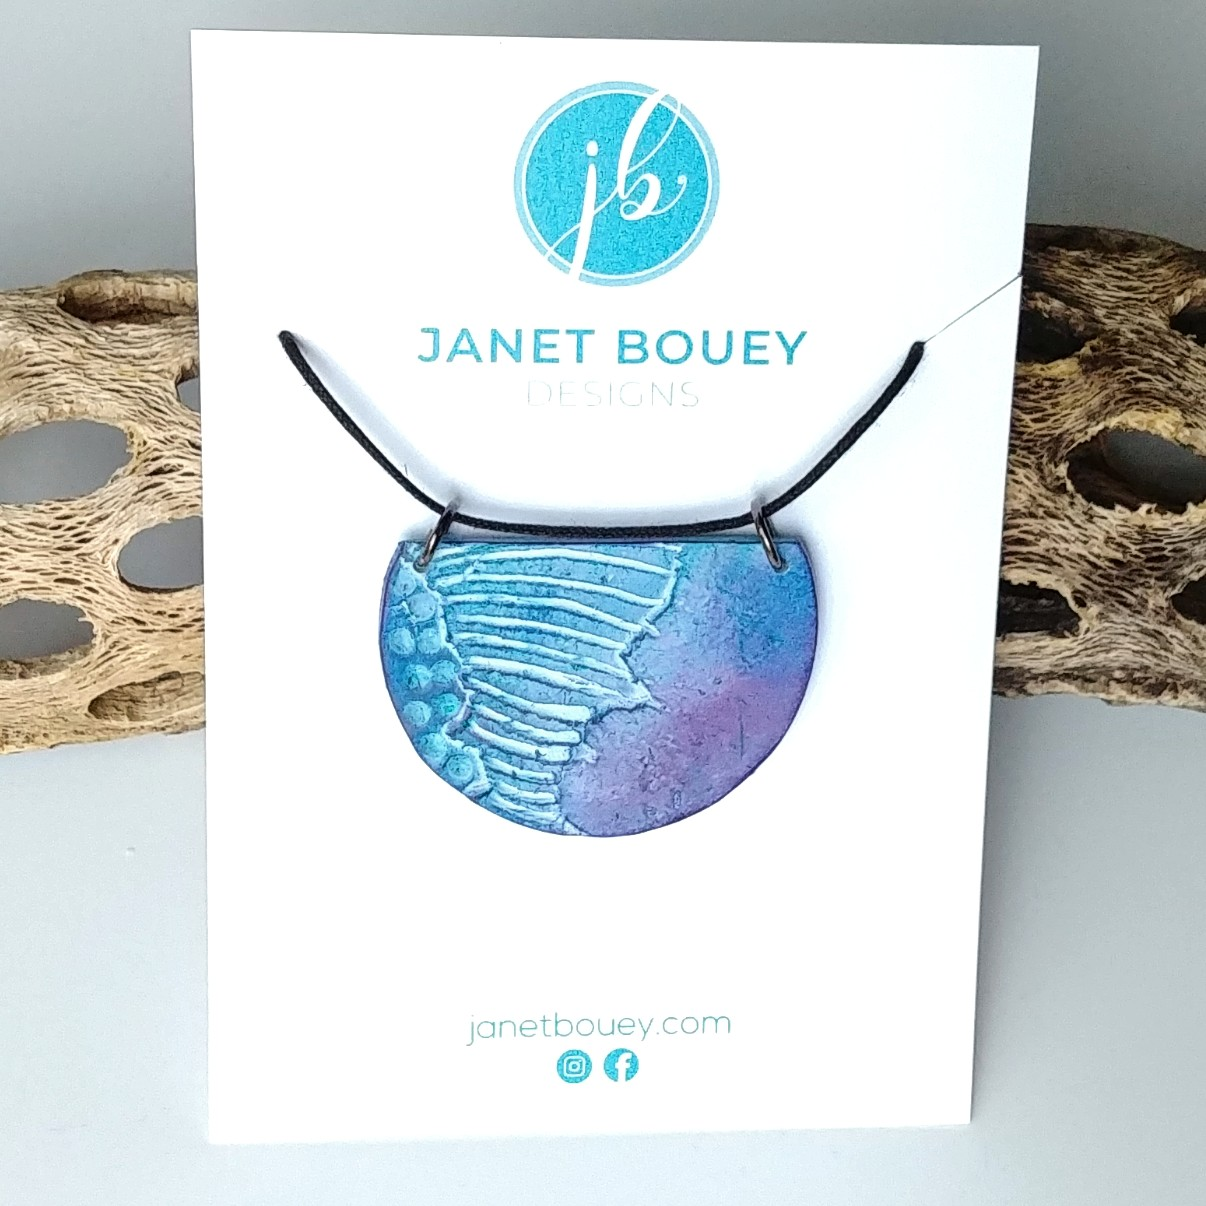 Janet Bouey Designs